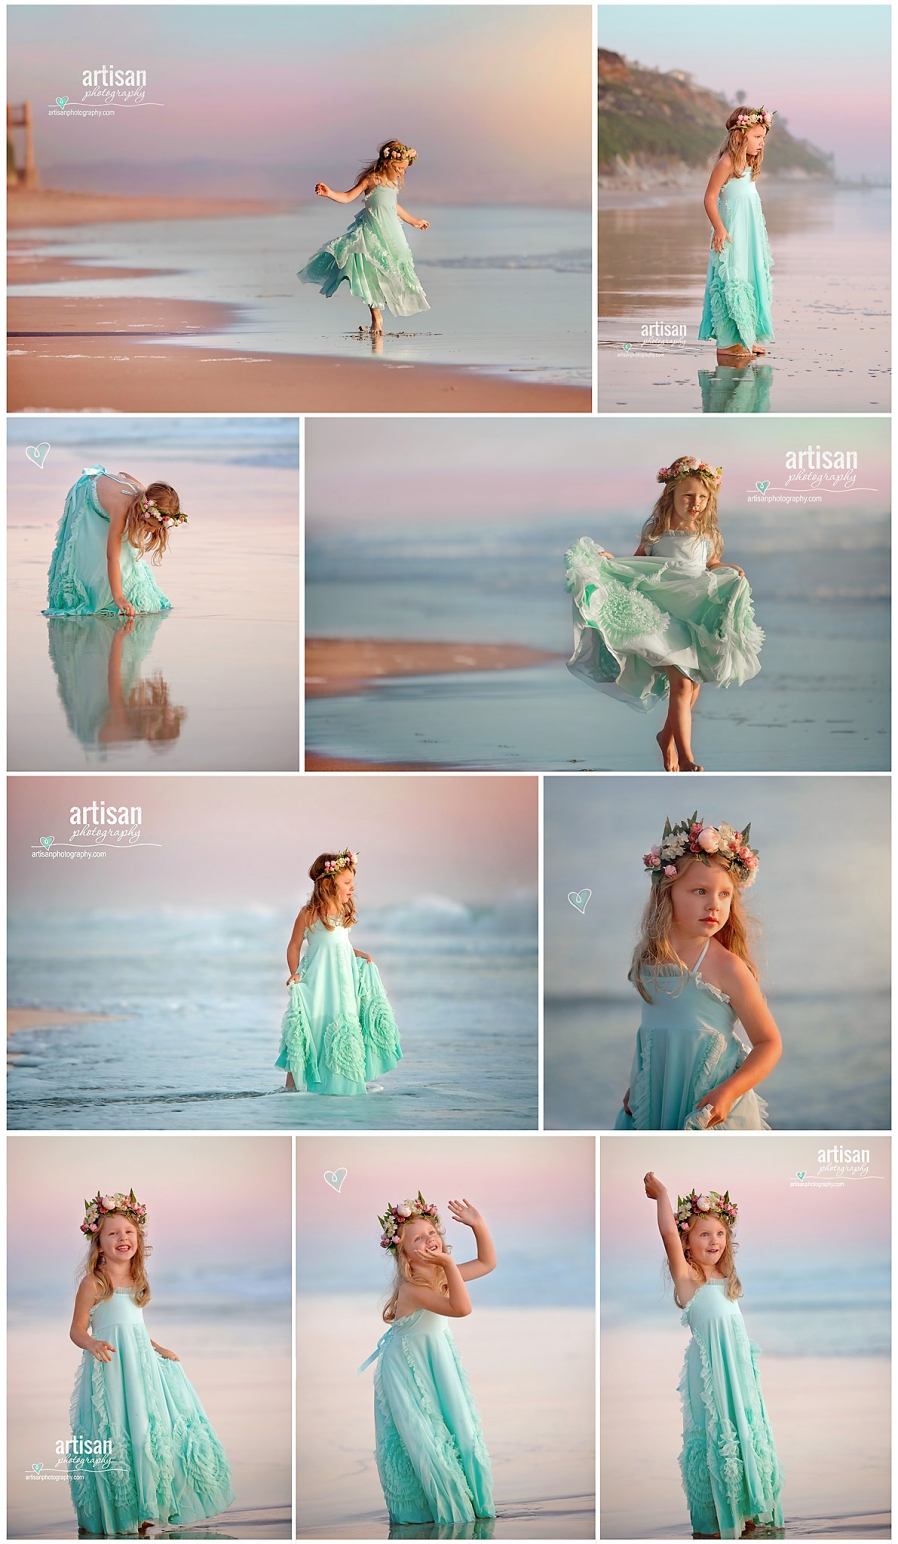 Artisan Photography Styled beach photoshoot, girl twirling on carlsbad california beach with princess dress